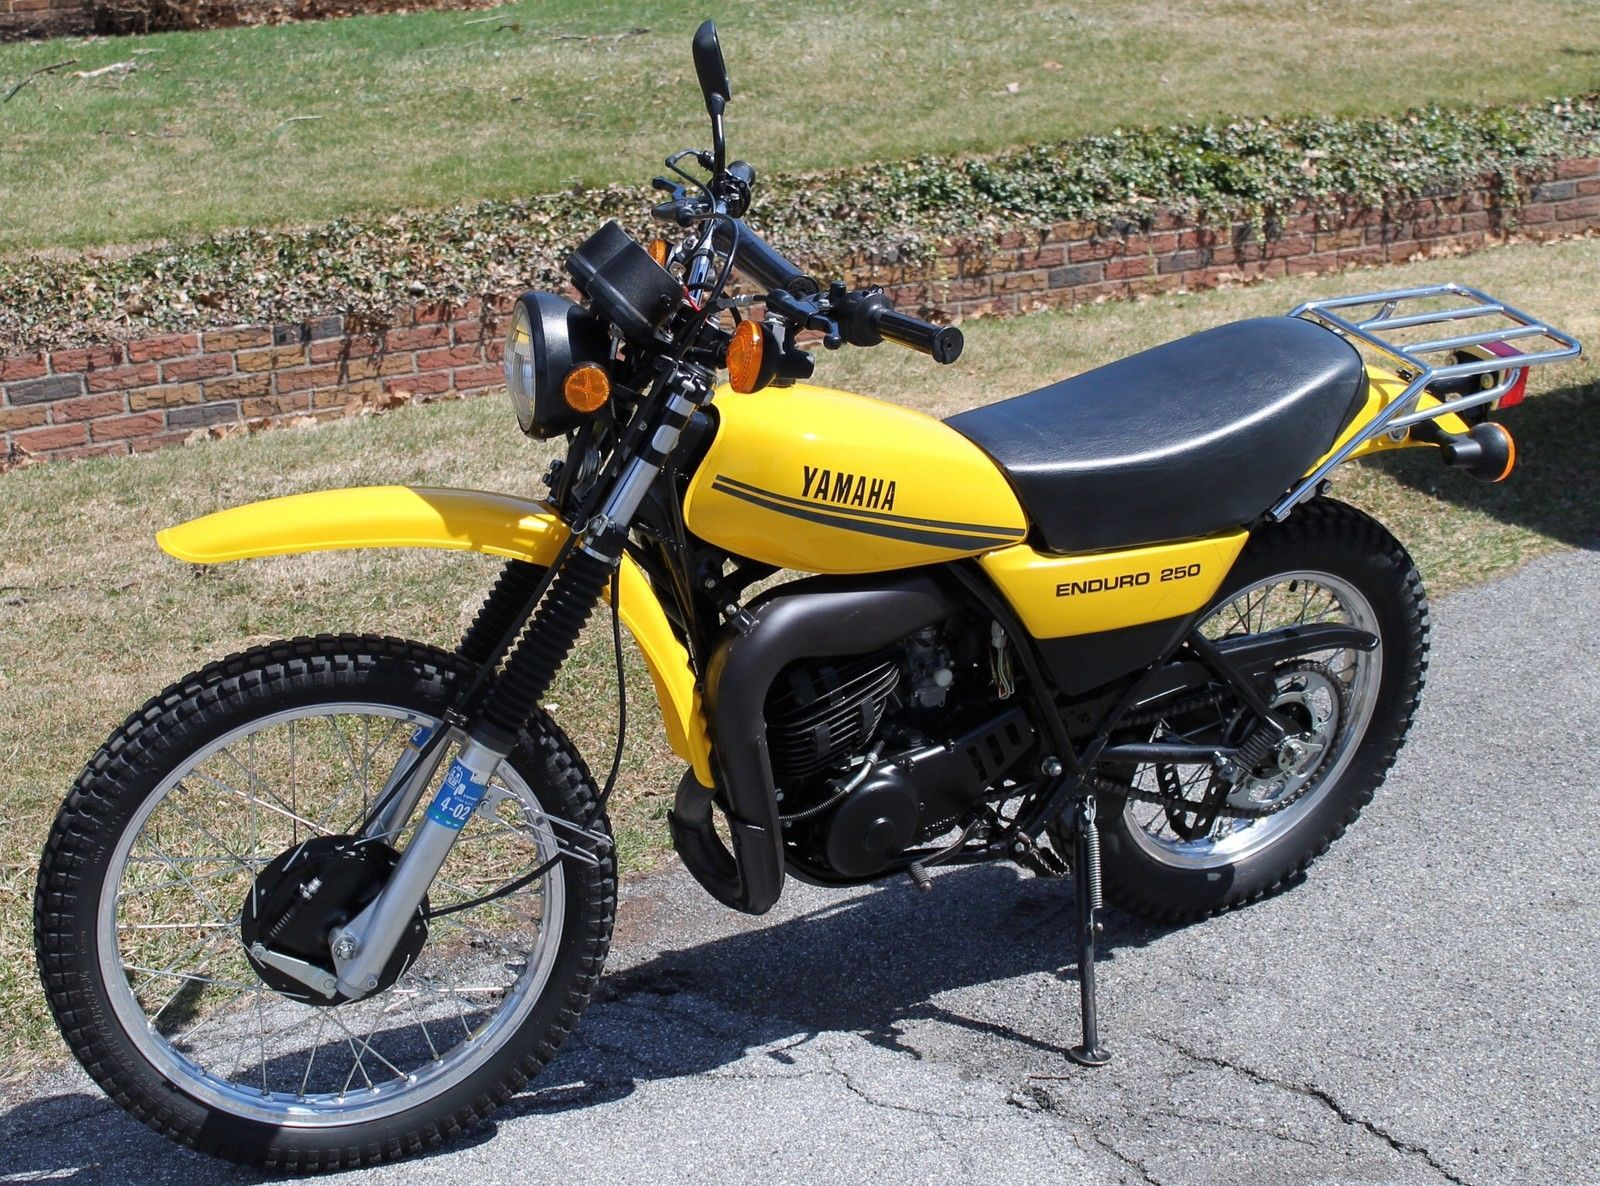 1974 yamaha dt 360 enduro bikes t yamaha engine. Black Bedroom Furniture Sets. Home Design Ideas